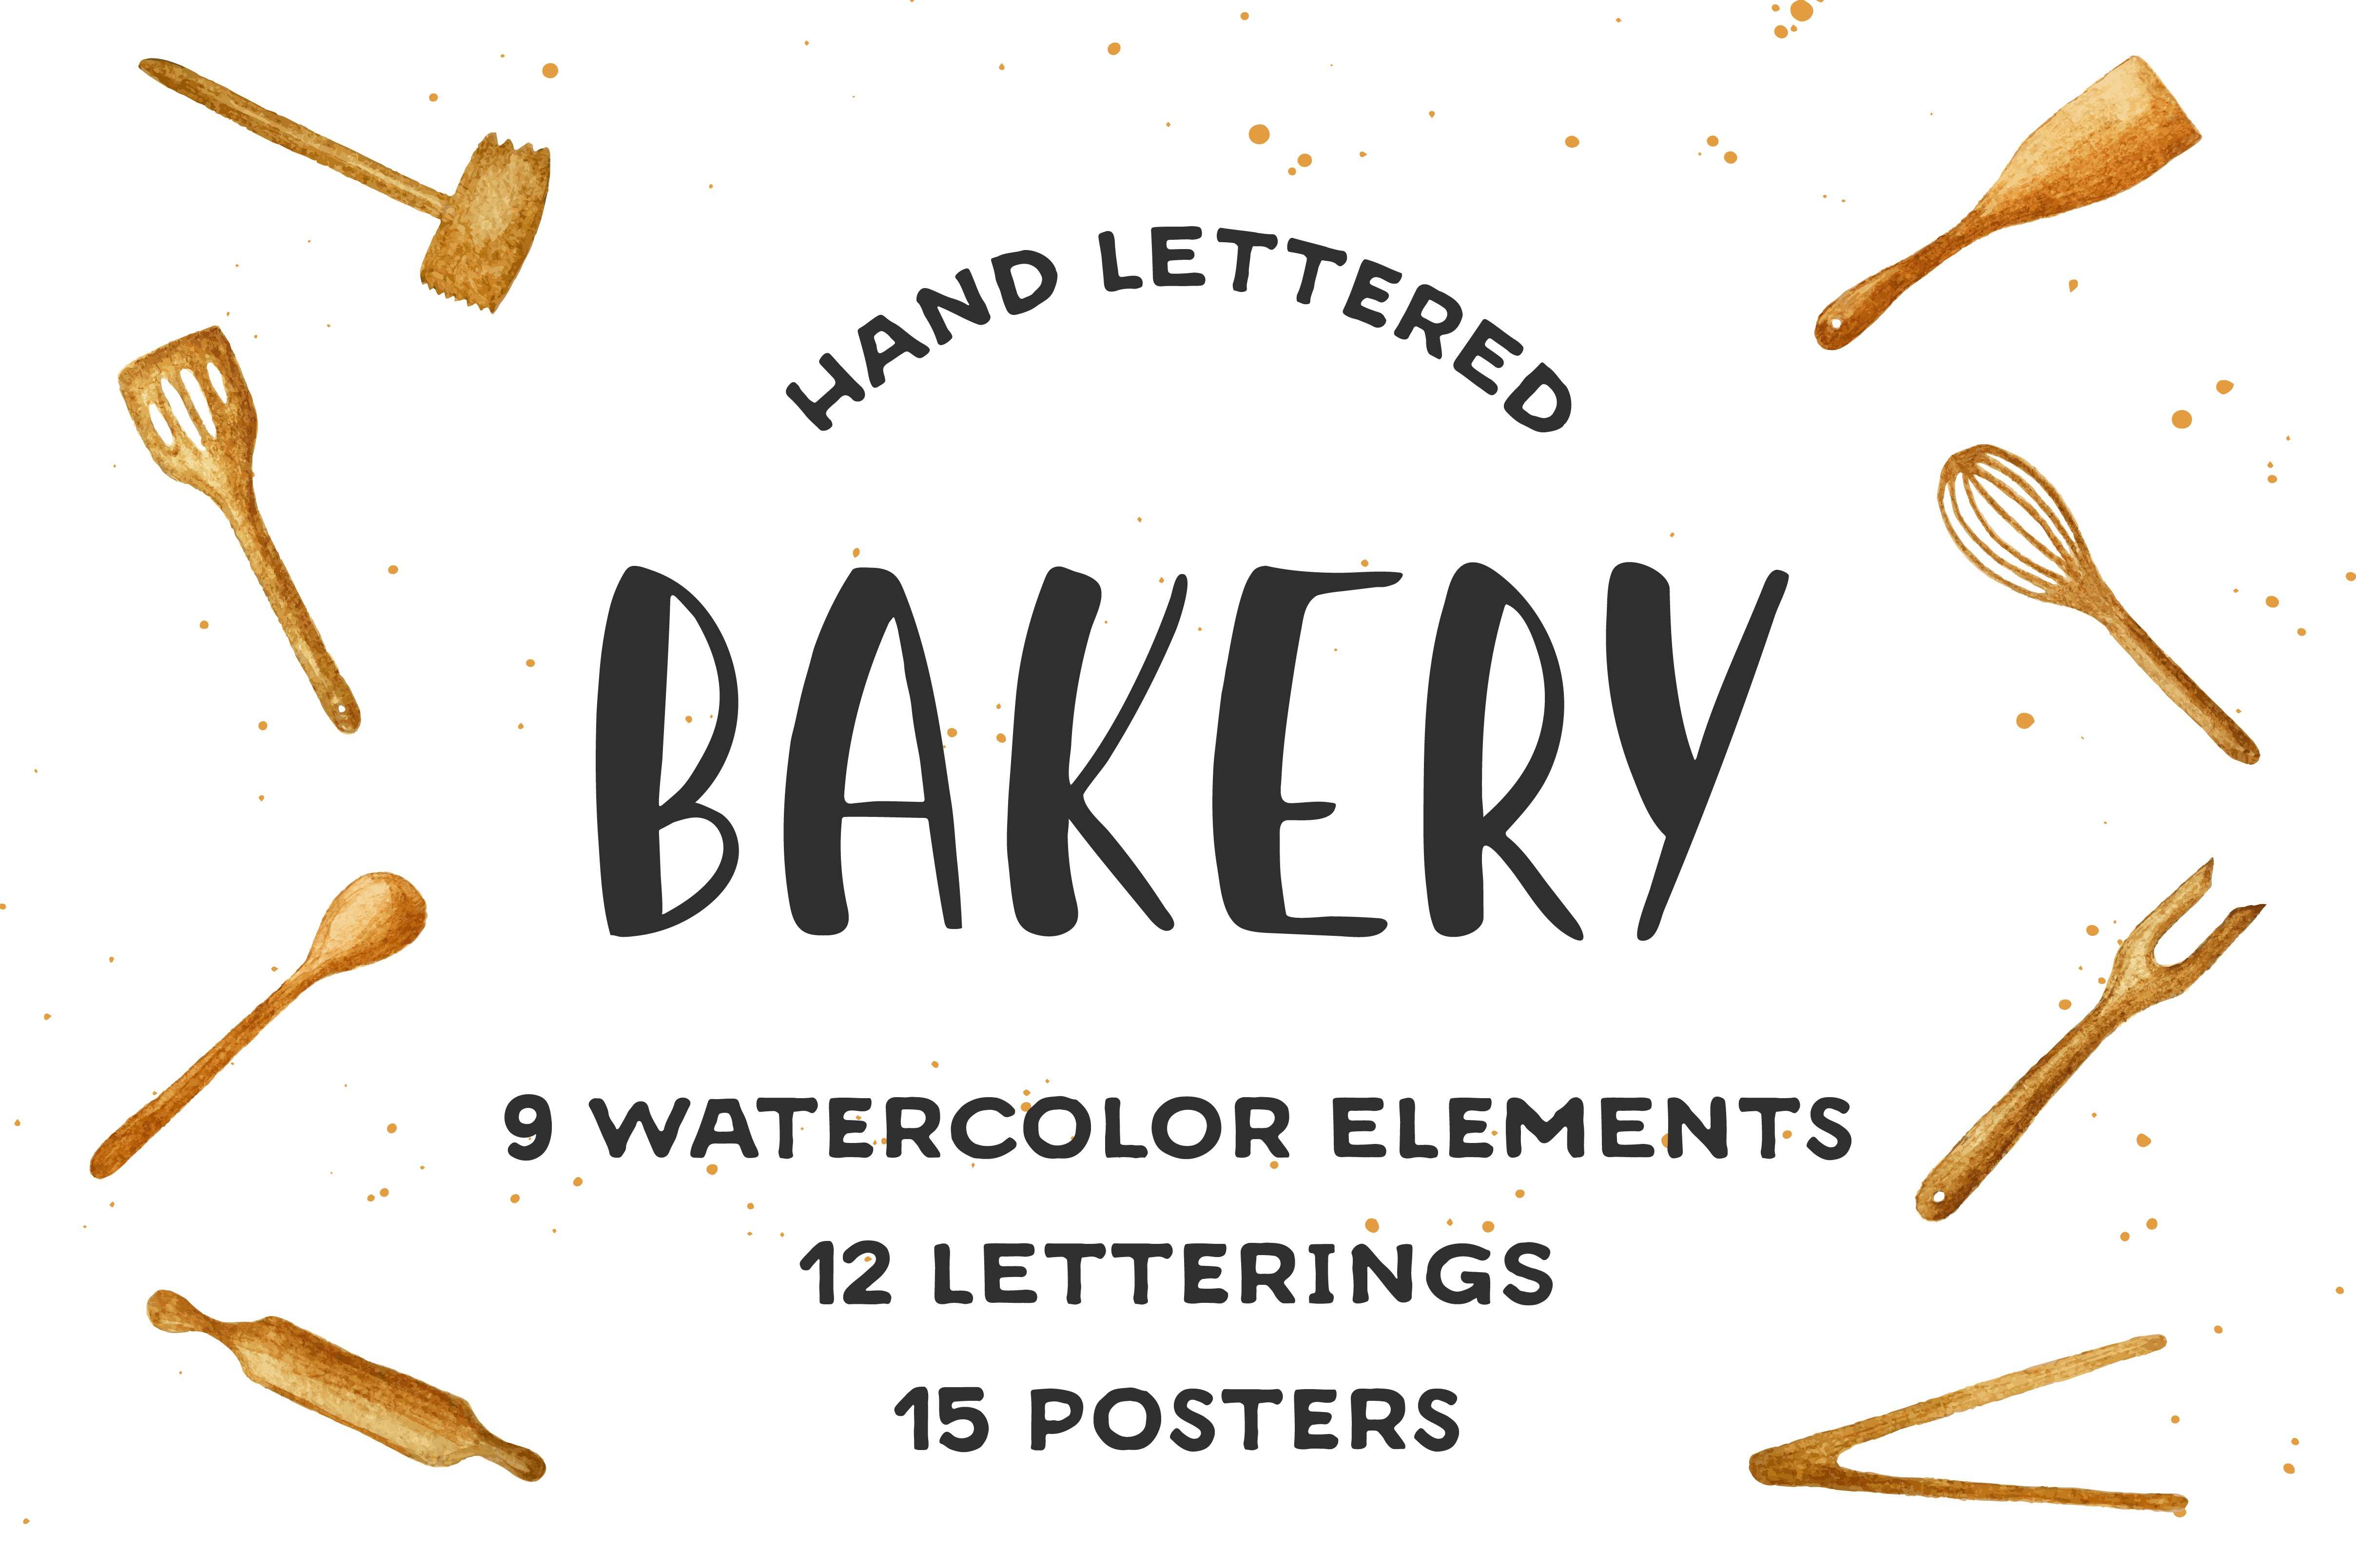 Bakery Quotes And Posters Illustrations Creative Market